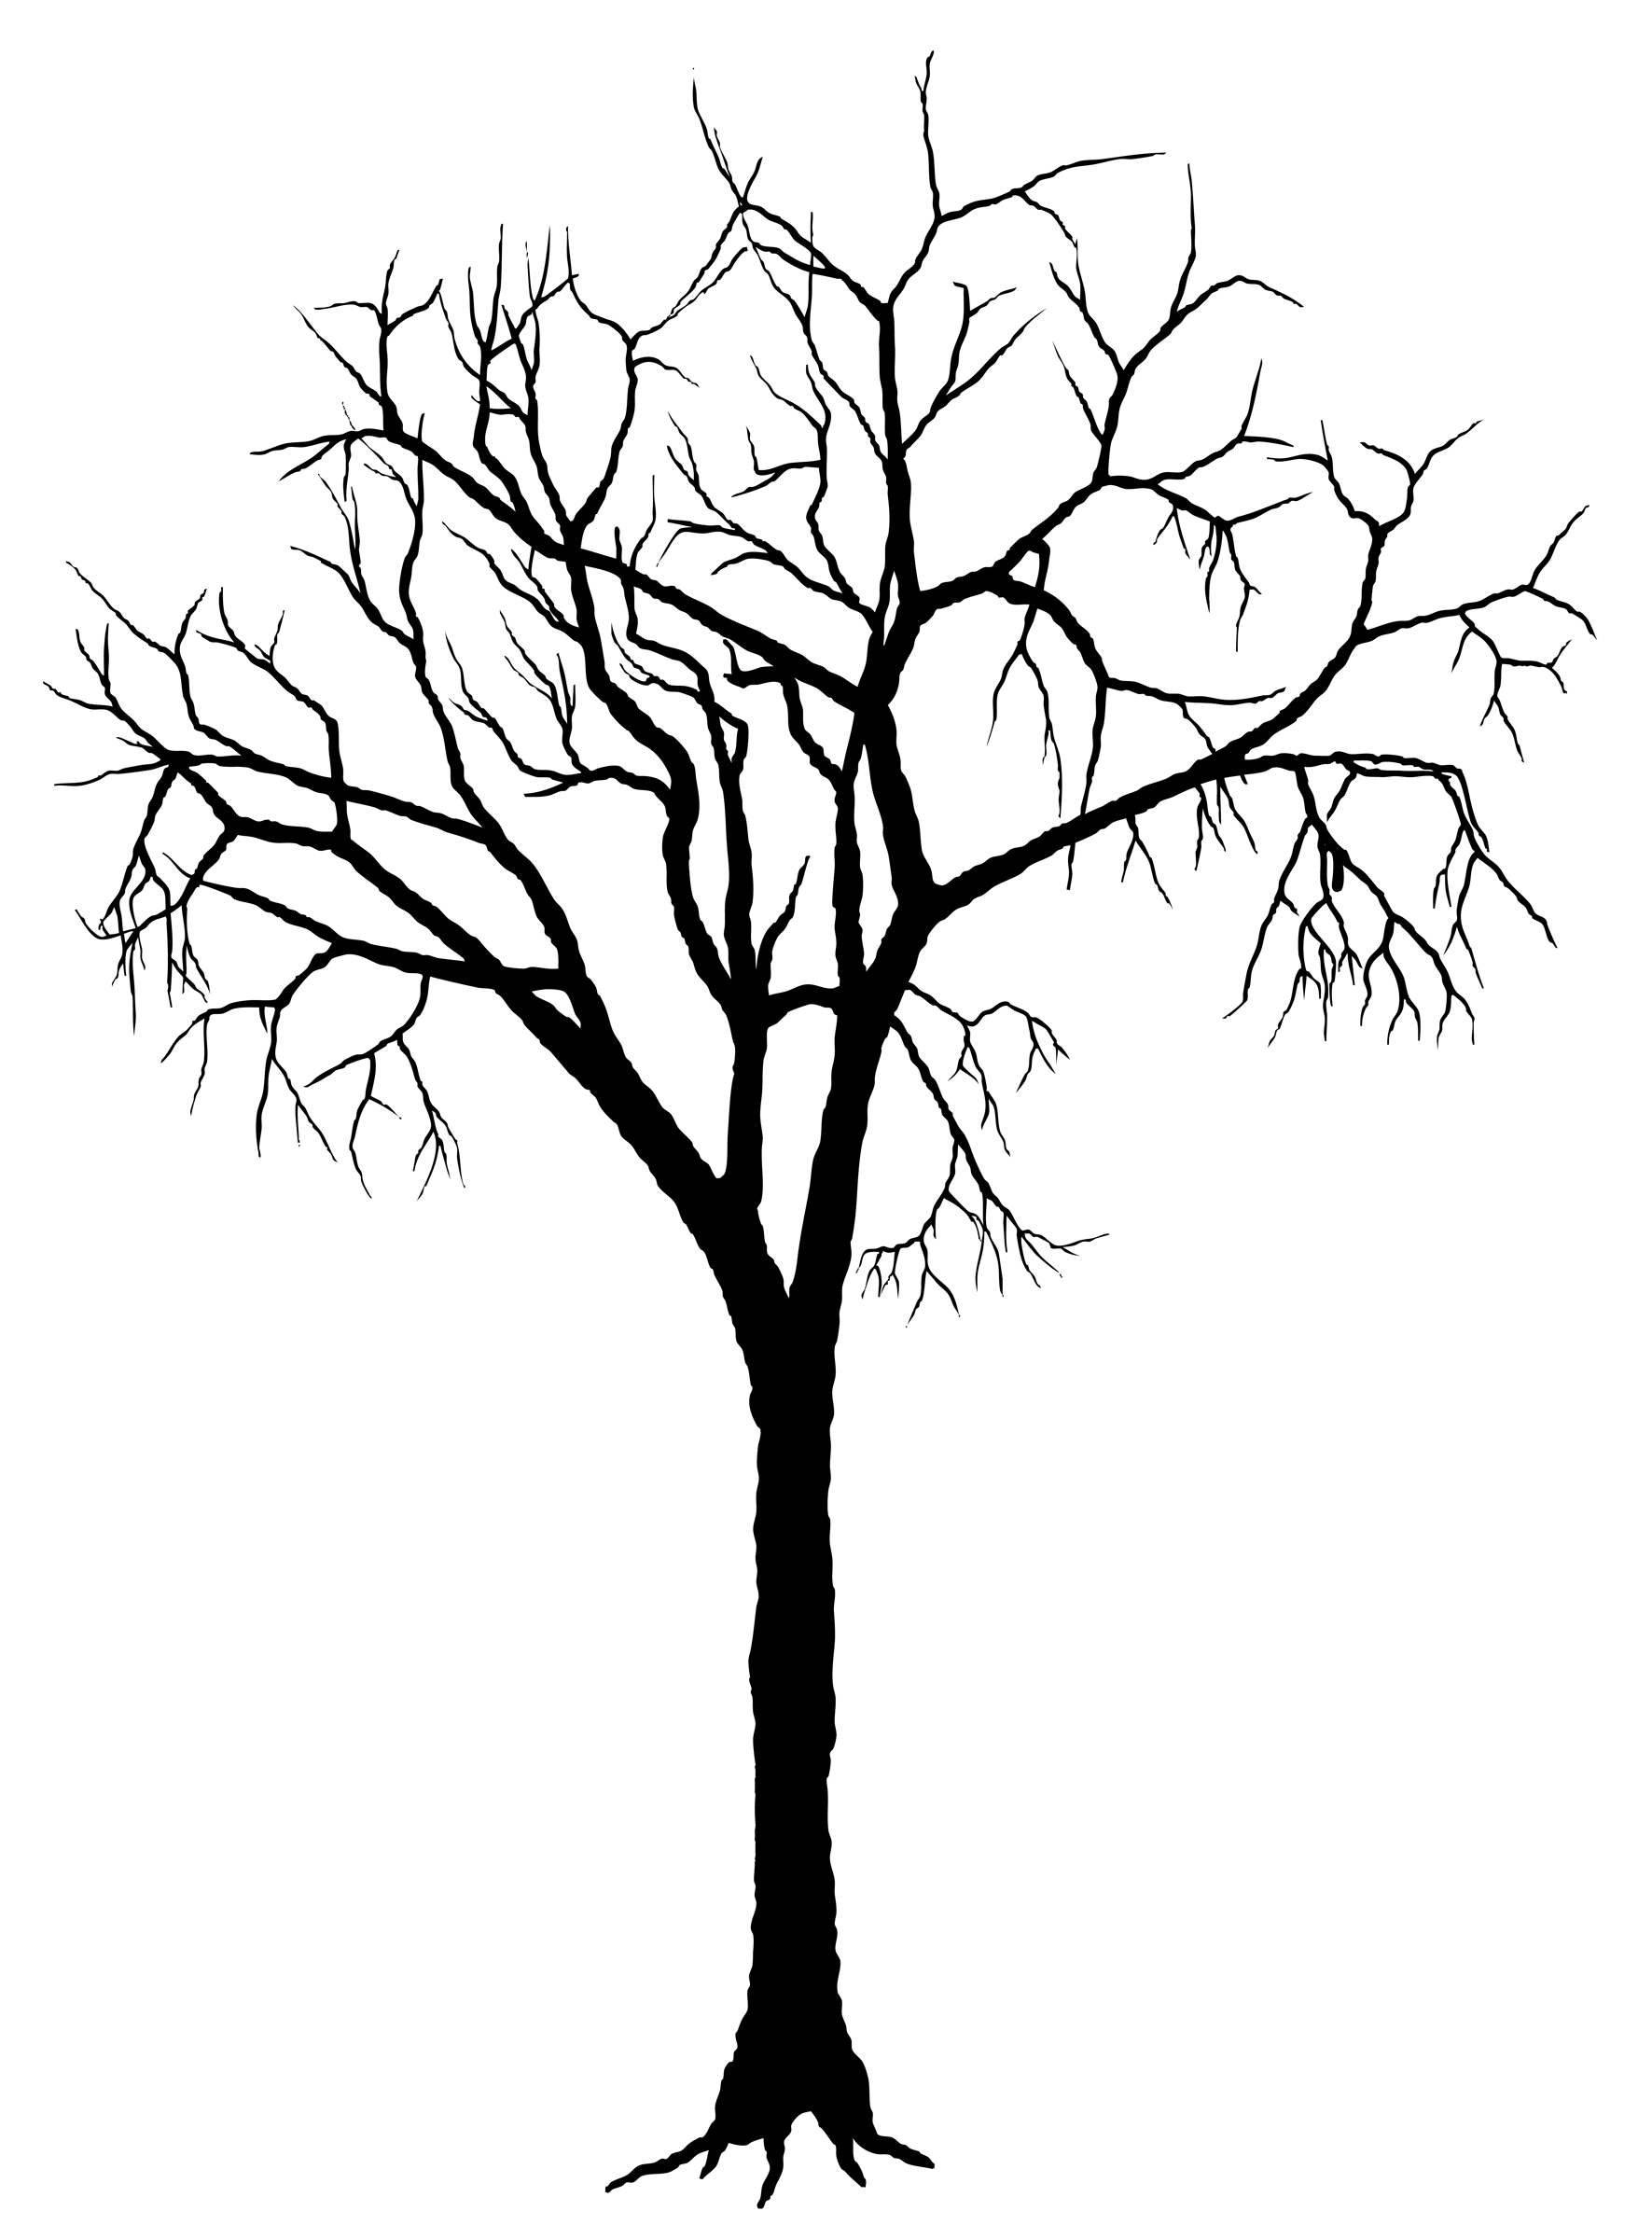 Spooky clipart branch Silhouette ClipArt Best Of silhouettes